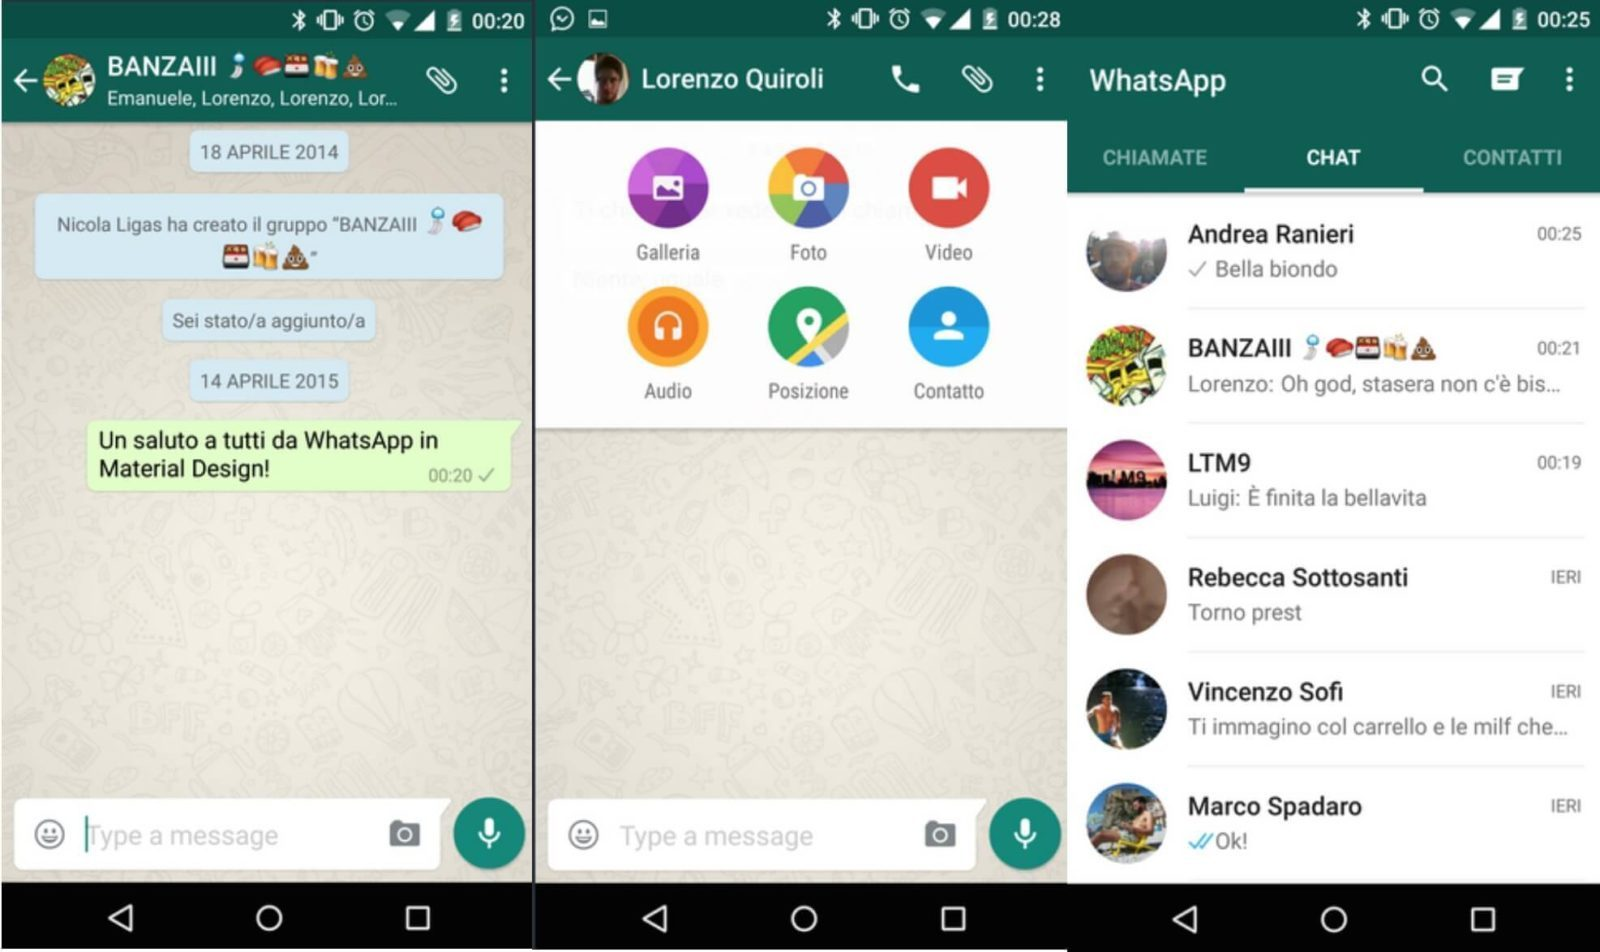 how to add a person on whatsapp